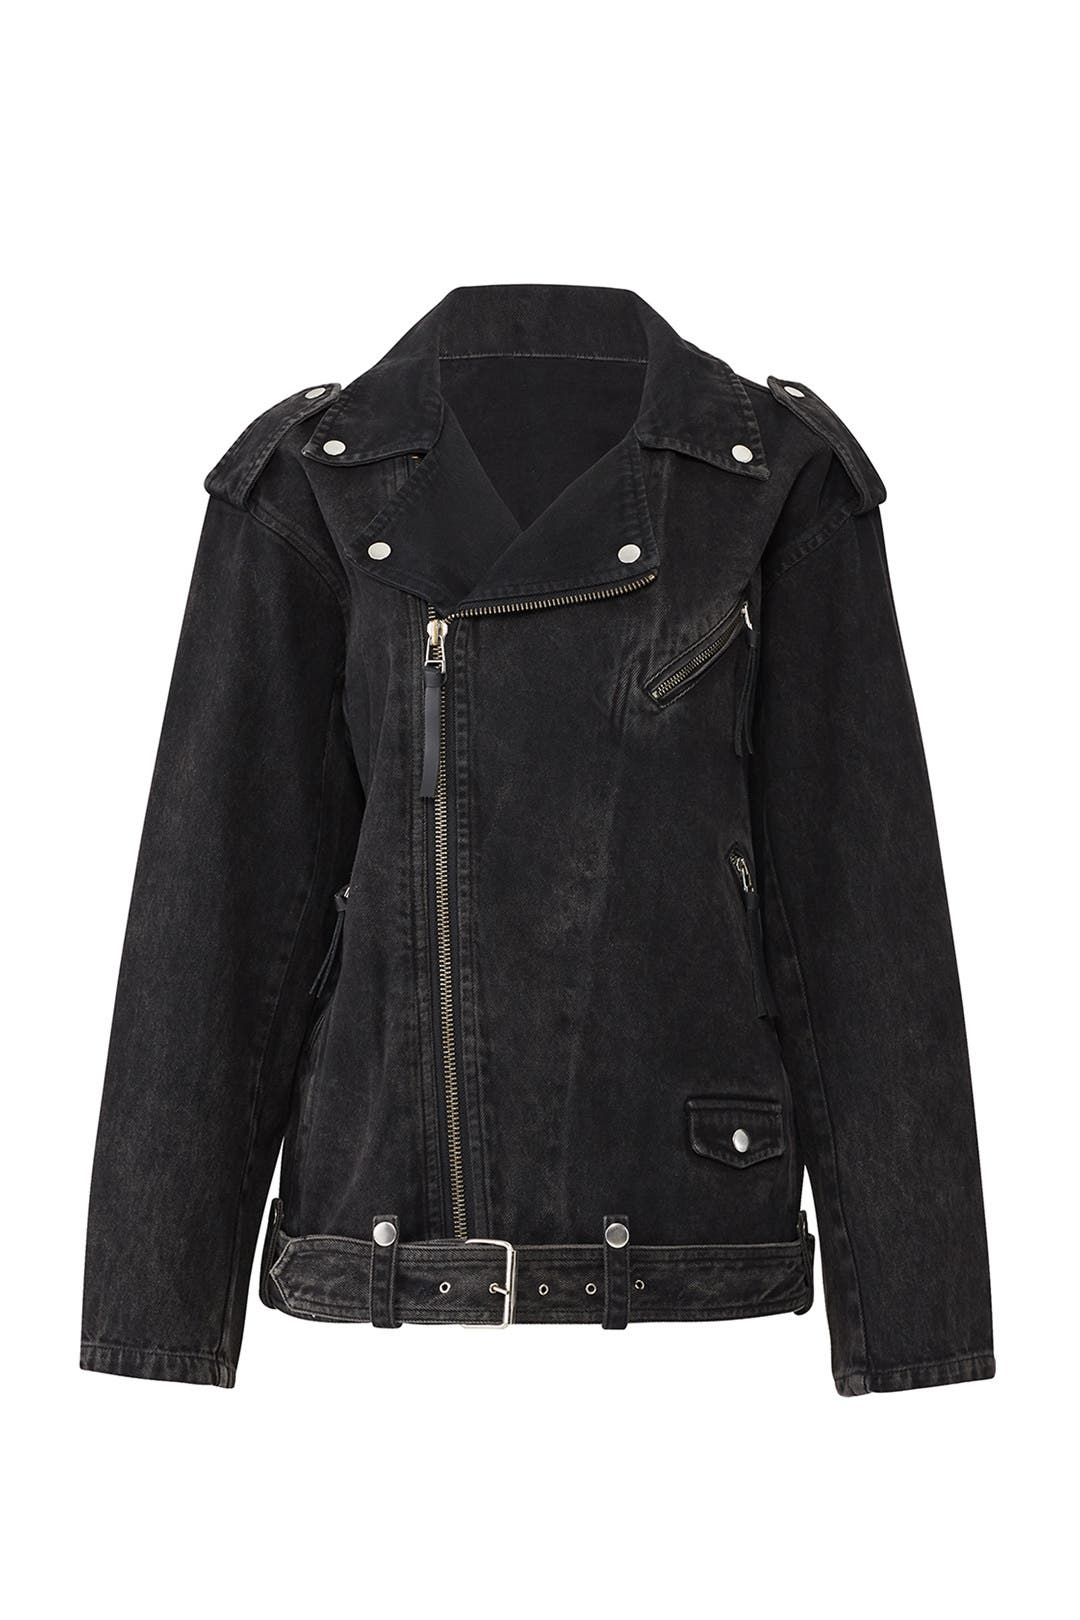 08d7434ffc2 Embroidered Denim Jacket by The Kooples for $70 | Rent the Runway